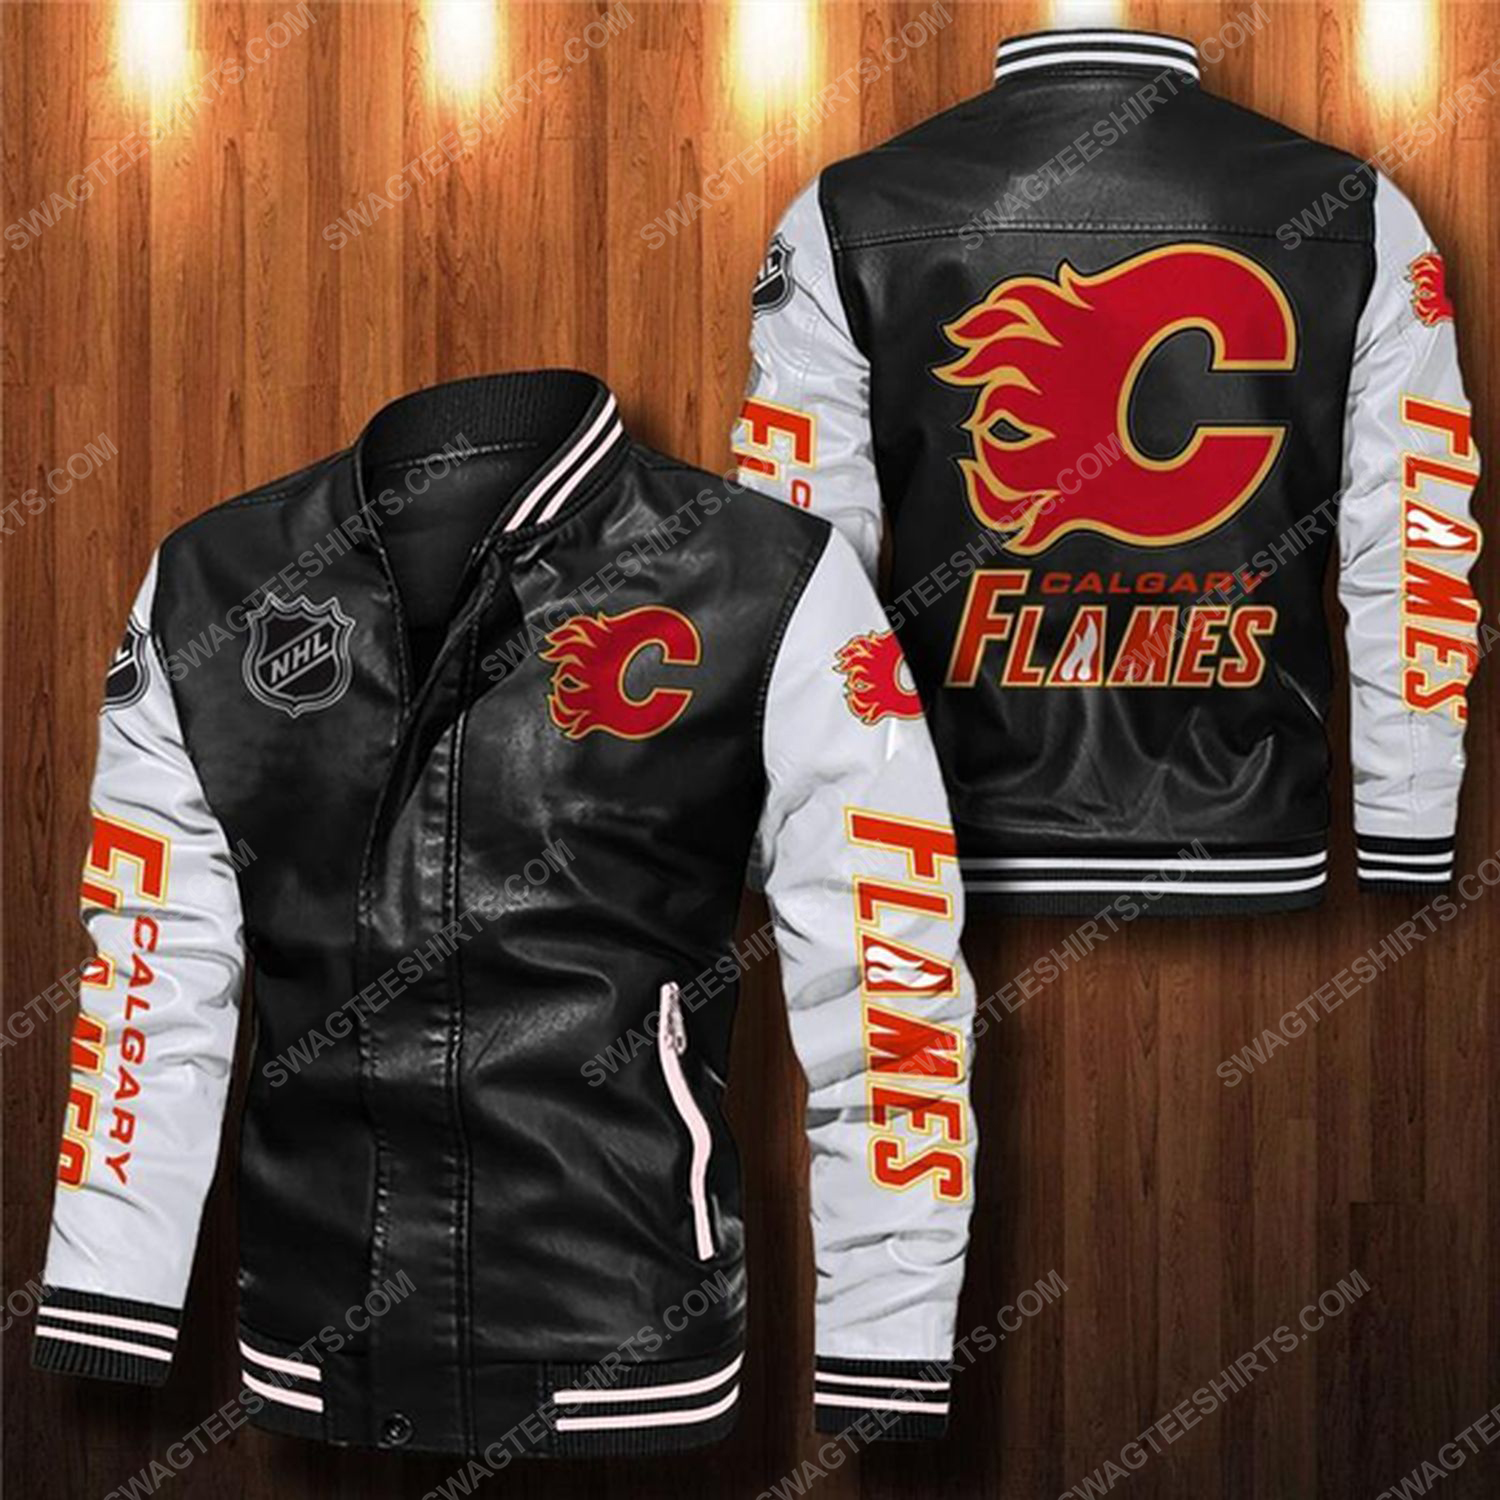 Calgary flames all over print leather bomber jacket - white